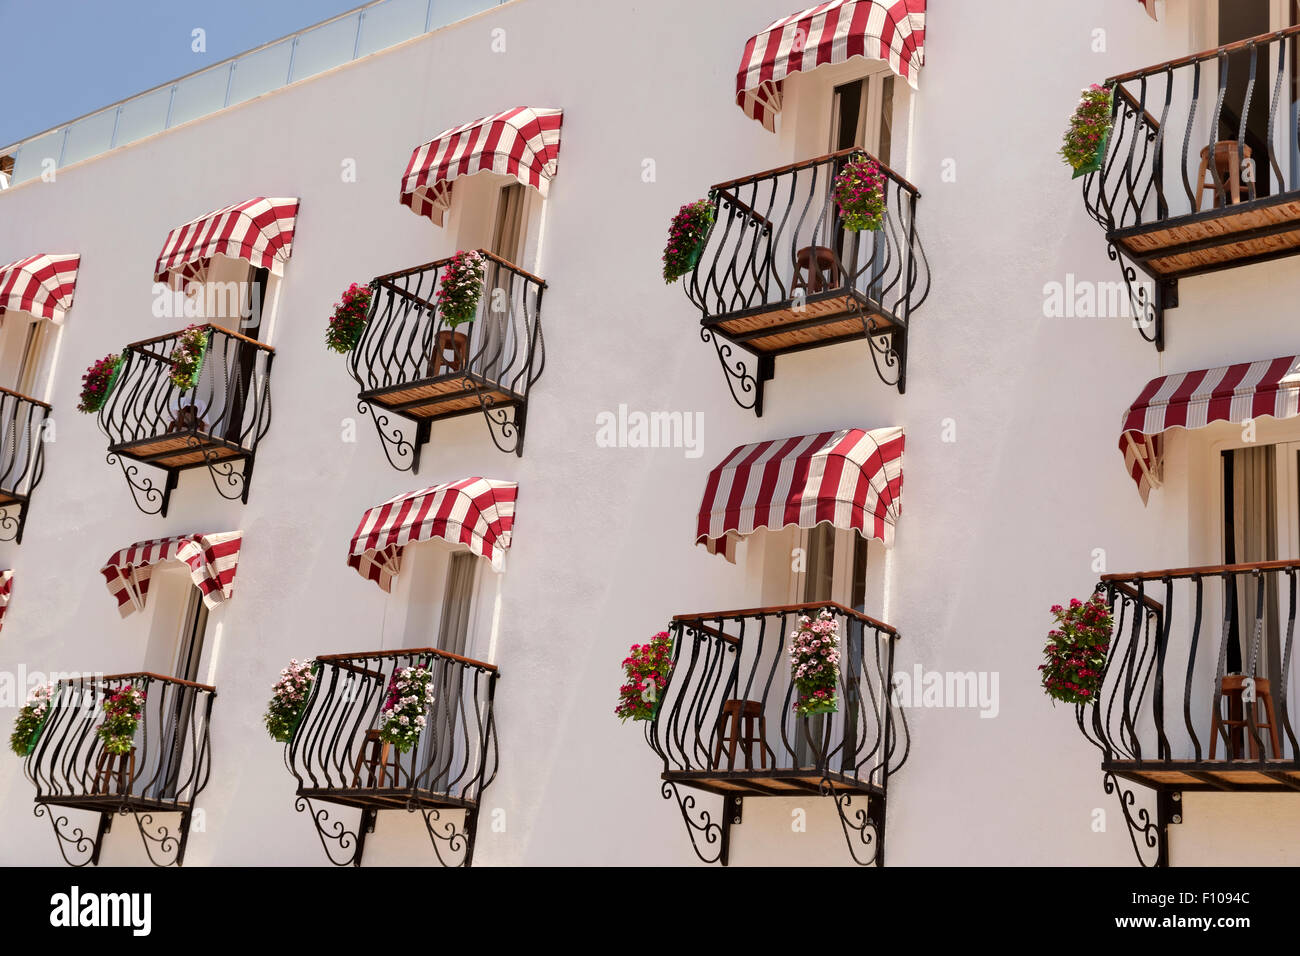 Mediterranean Hotel Balconies with awnings. - Stock Image